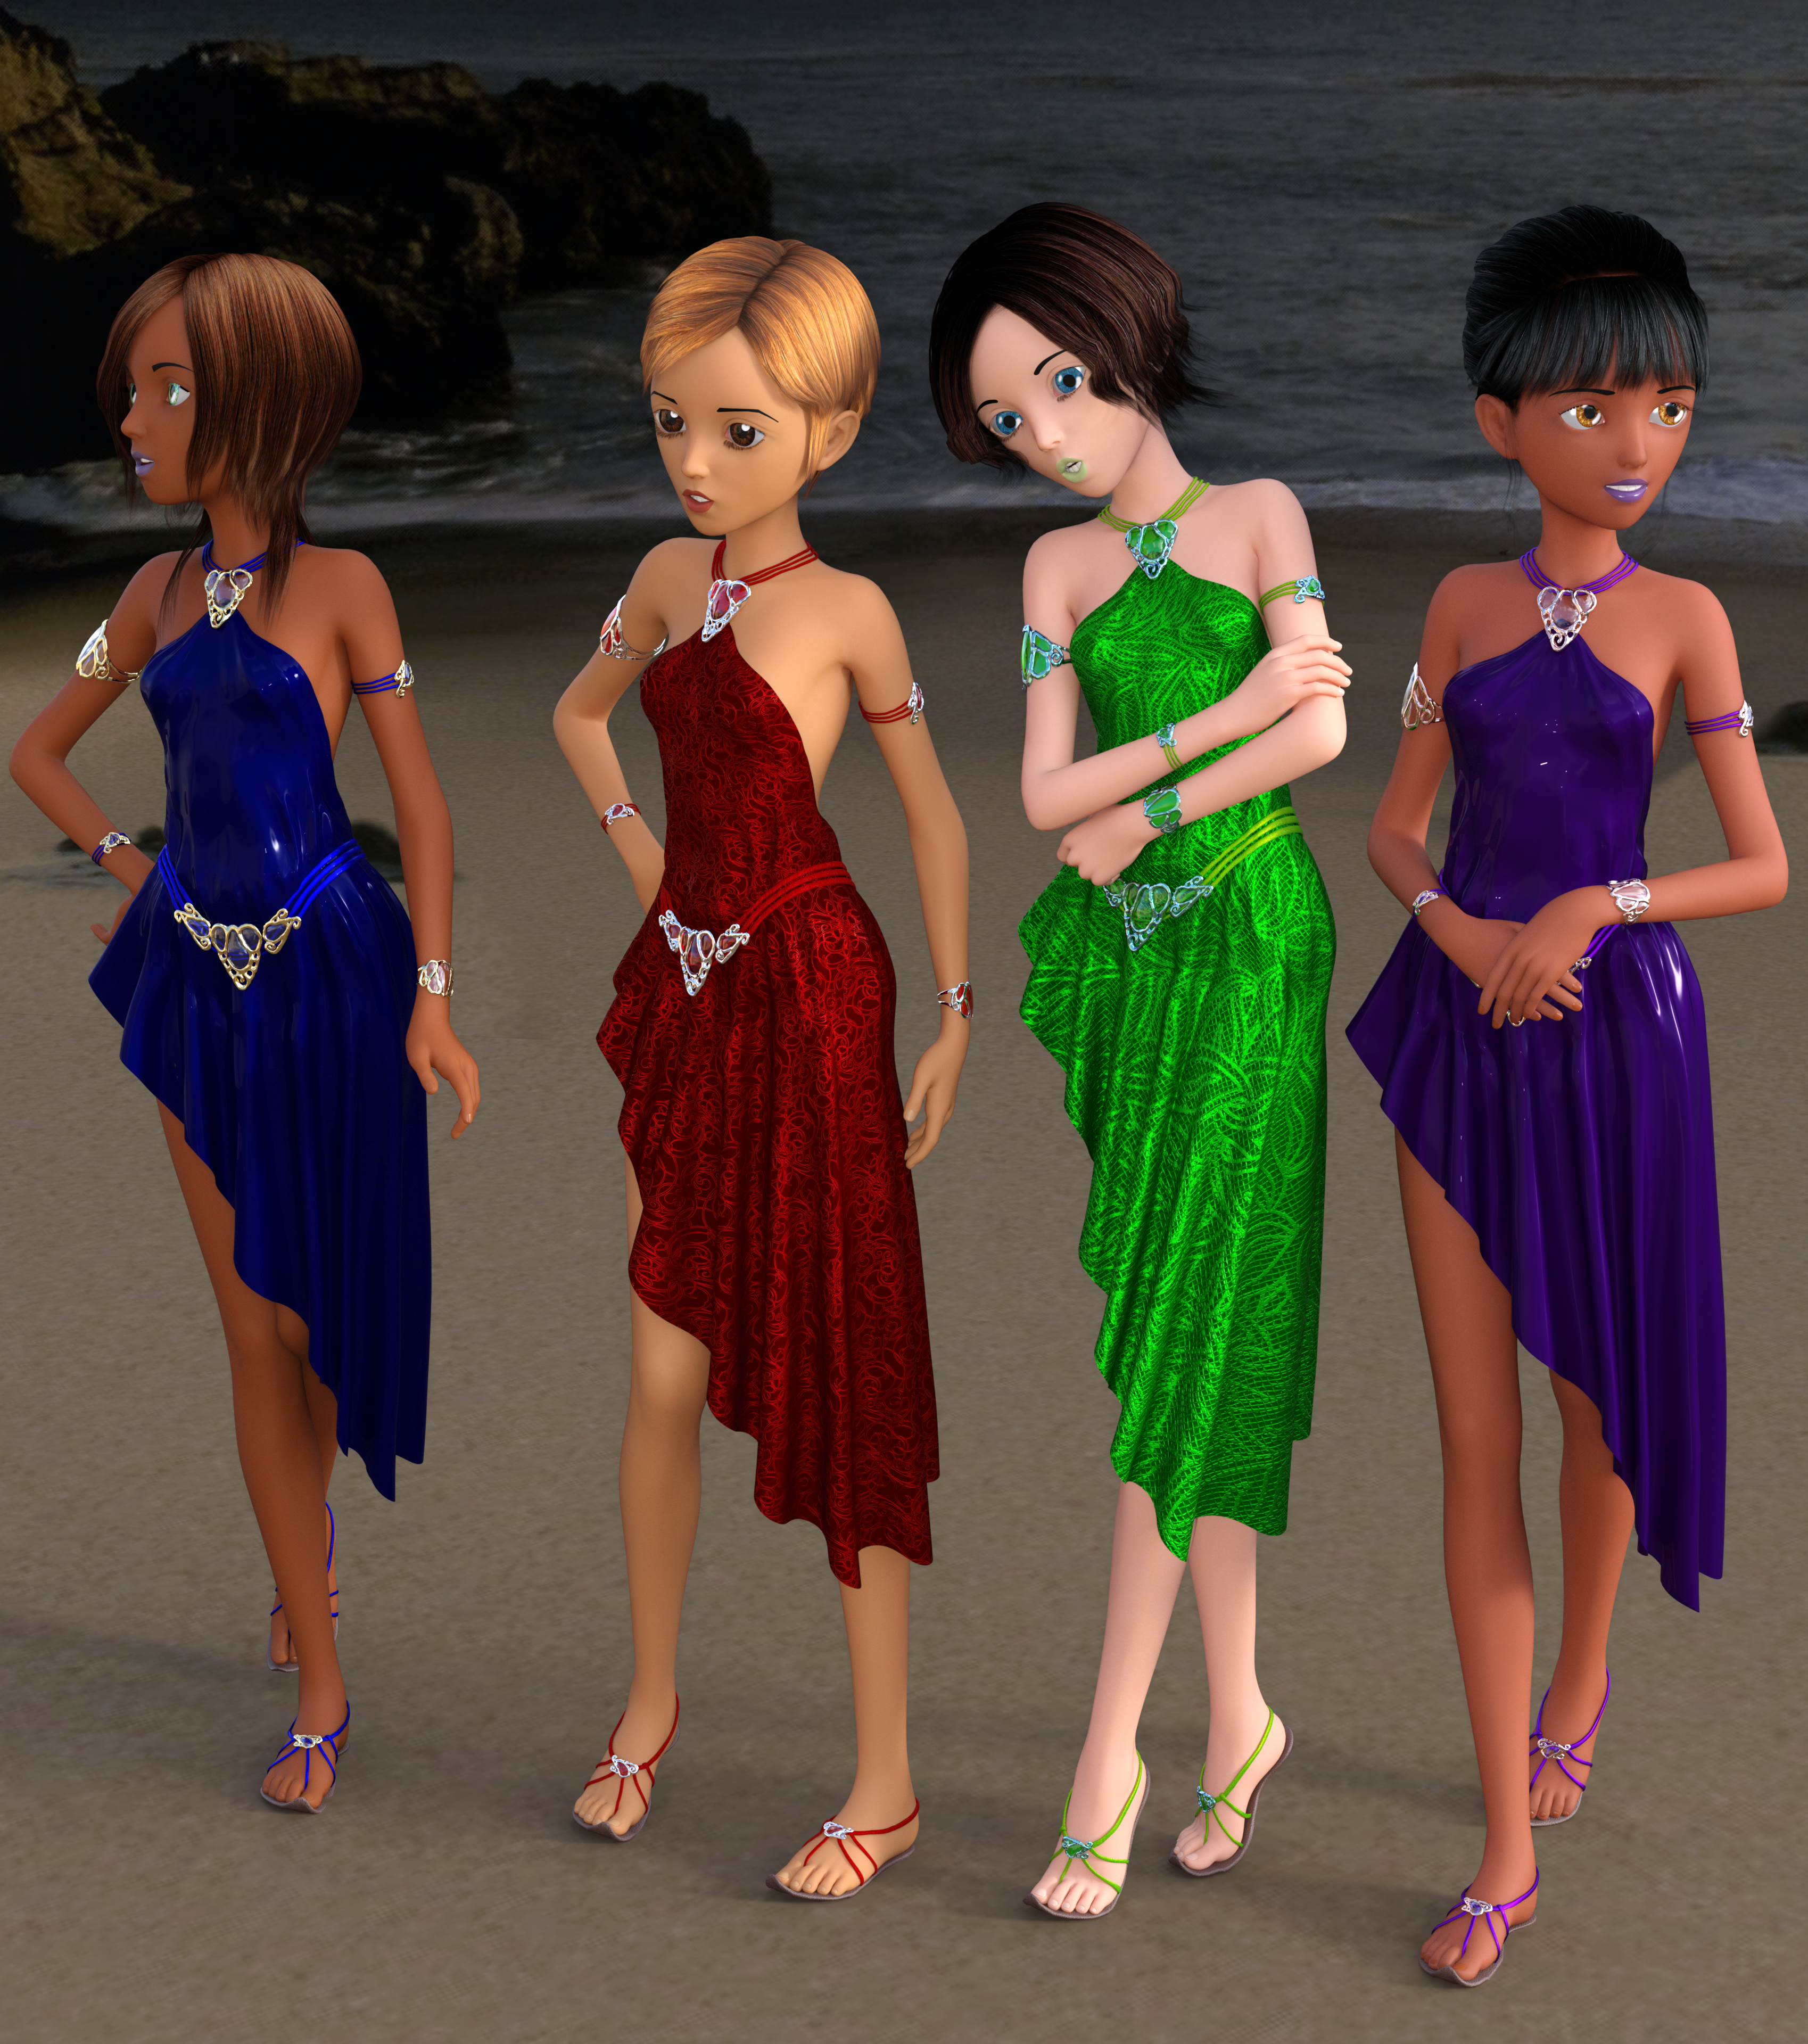 Four women standing on a beach wearing asymmetrical dresses, a belt, bracelets on their upper arms and wrists, a necklace, and a pair of sandals made up of ribbons held together by a set of three jewels on top of the foot.